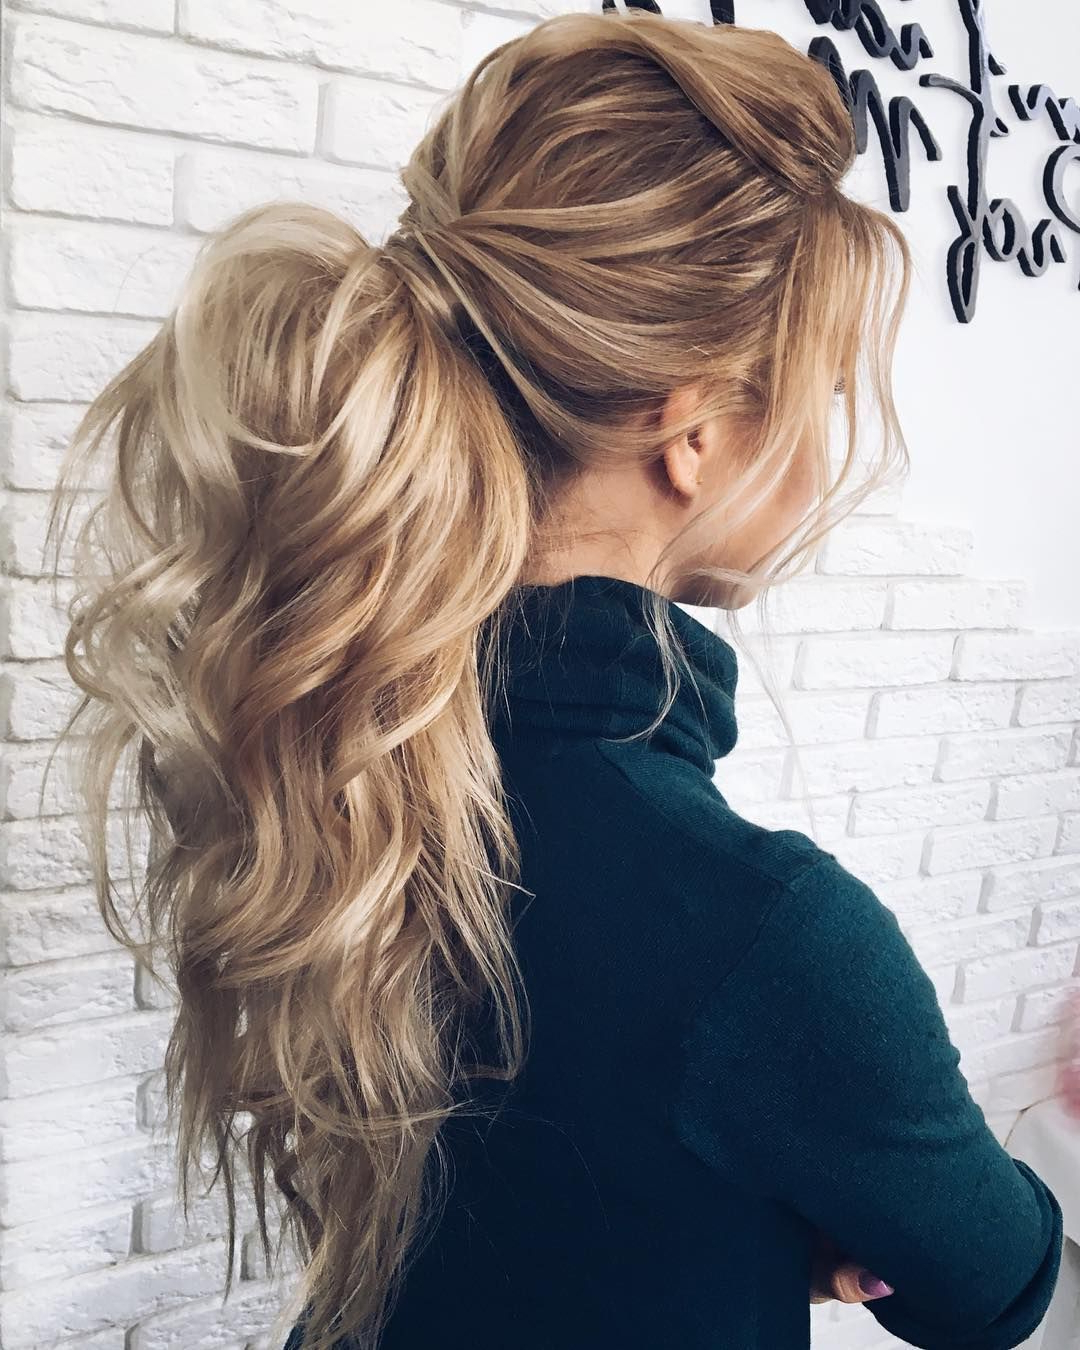 Gorgeous Ponytail Hairstyle Ideas That Will Leave You In Fab Intended For Famous Voluminous Half Ponytail Bridal Hairstyles (View 6 of 20)